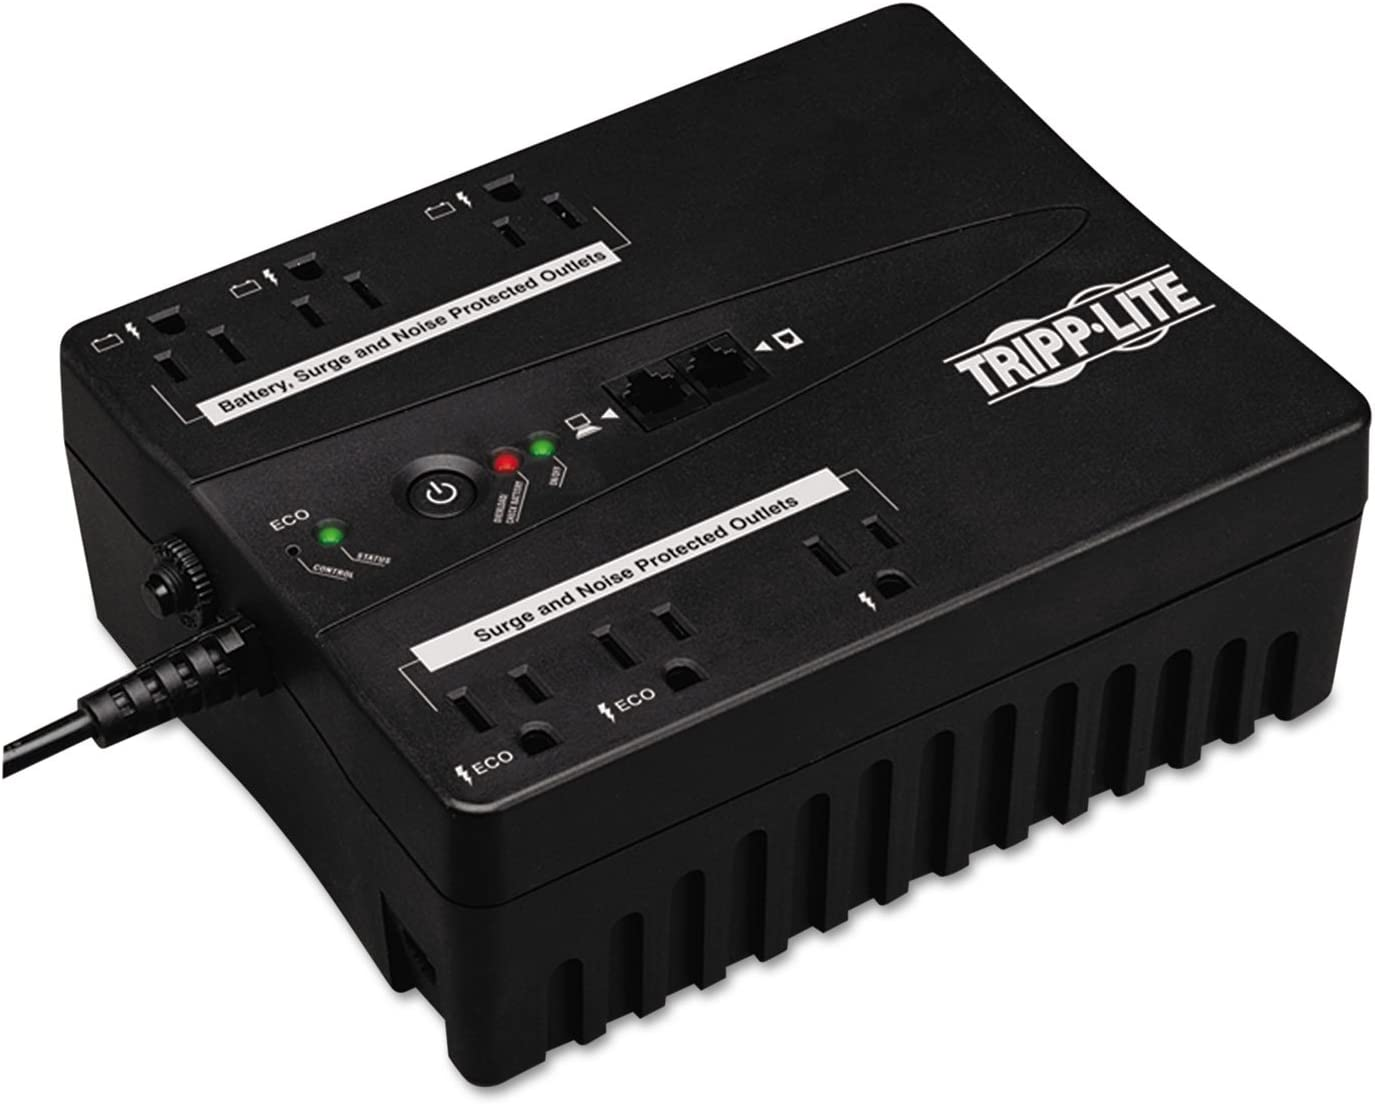 TRIPP LITE ECO350UPS Green Standby UPS System (Output Power Capacity: 350VA/180W 6 outlets3 UPS/Sur